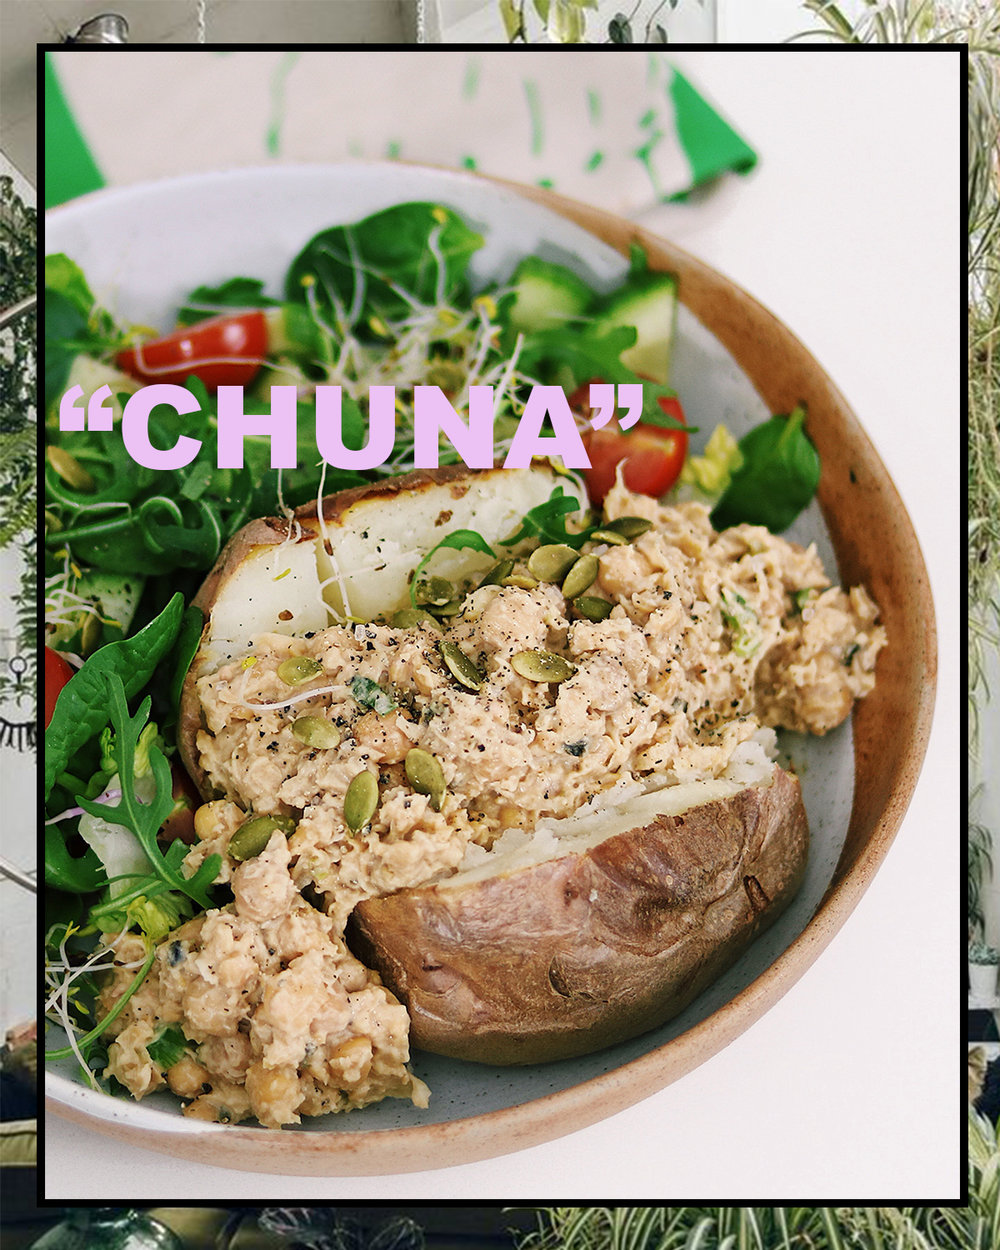 Chickpea 'tuna' recipe - CHUNA (chickpeas that taste like tuna mayo) one of the most popular recipes for those starting out on a vegan journey. It resembles 'tuna mayo' so well its insane! And is still jam packed with protein. Perfect for 'chuna' sandwiches, salads, and one of my favourites - 'chuna' mayo with a jacket potato!